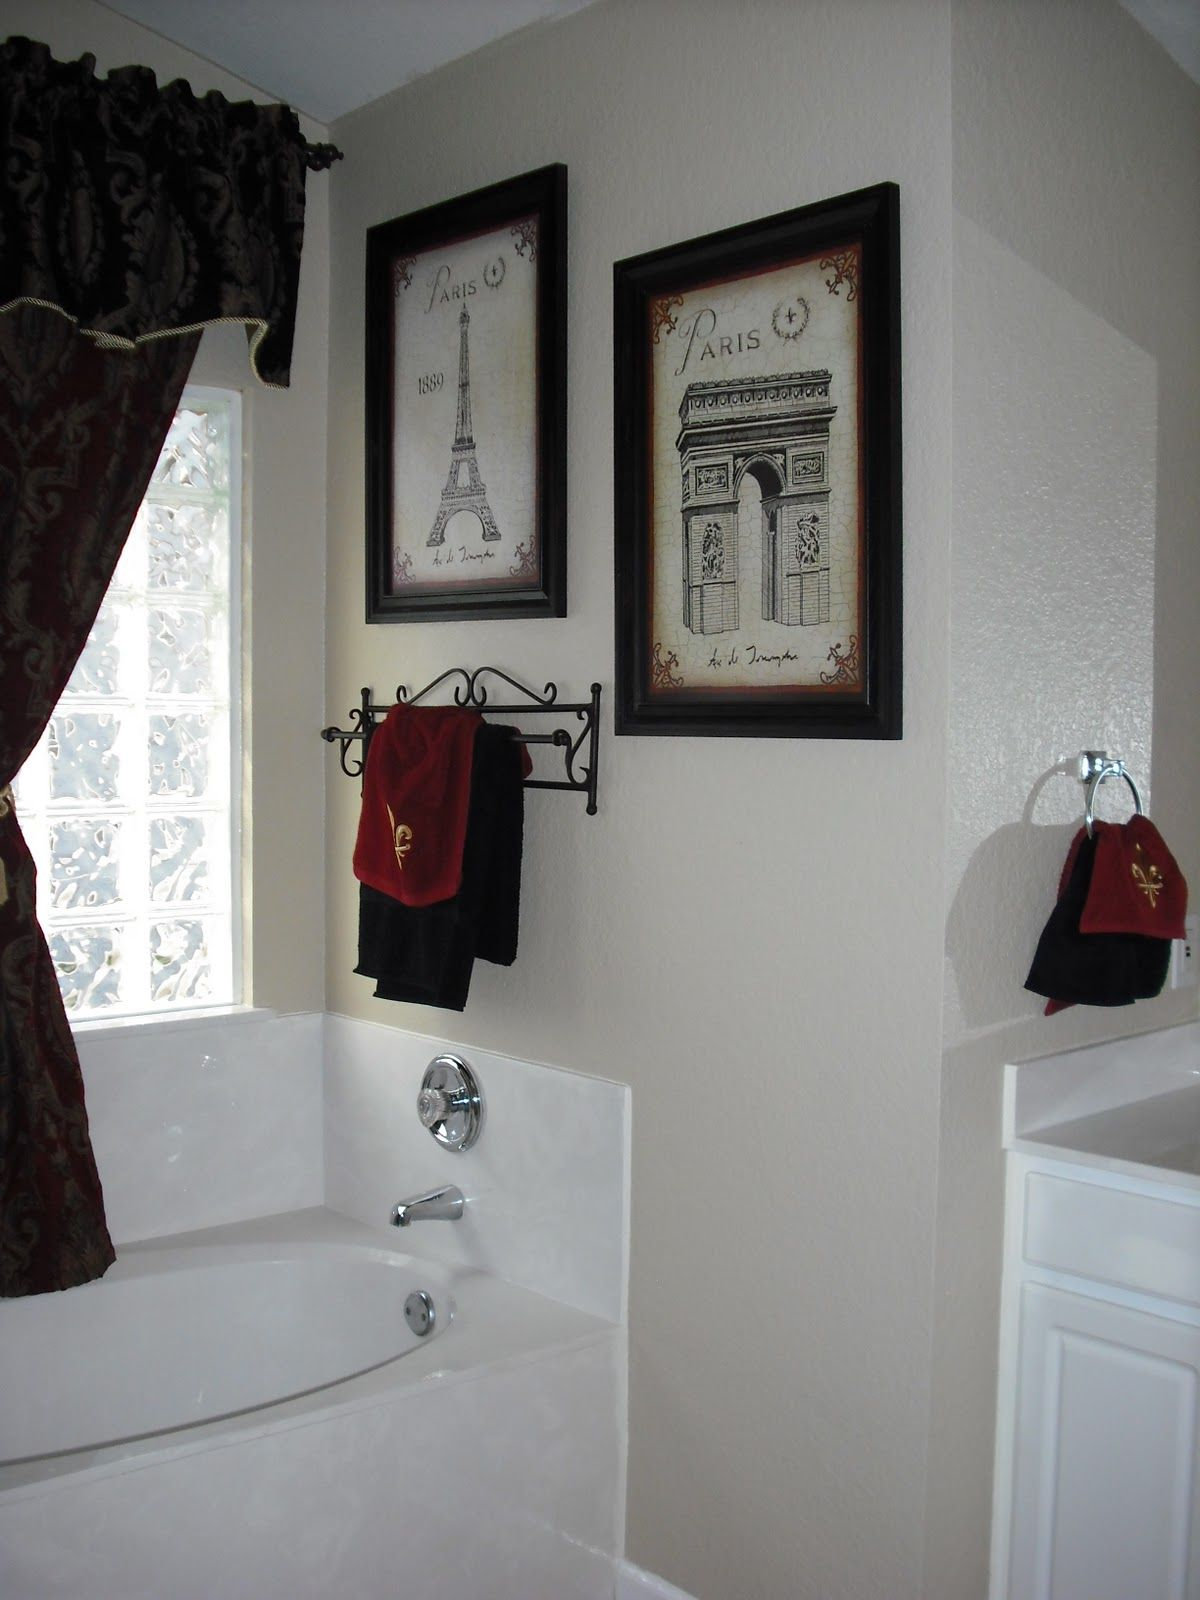 Paris bathroom decorating ideas - Black And White Paris With Hint Of Red